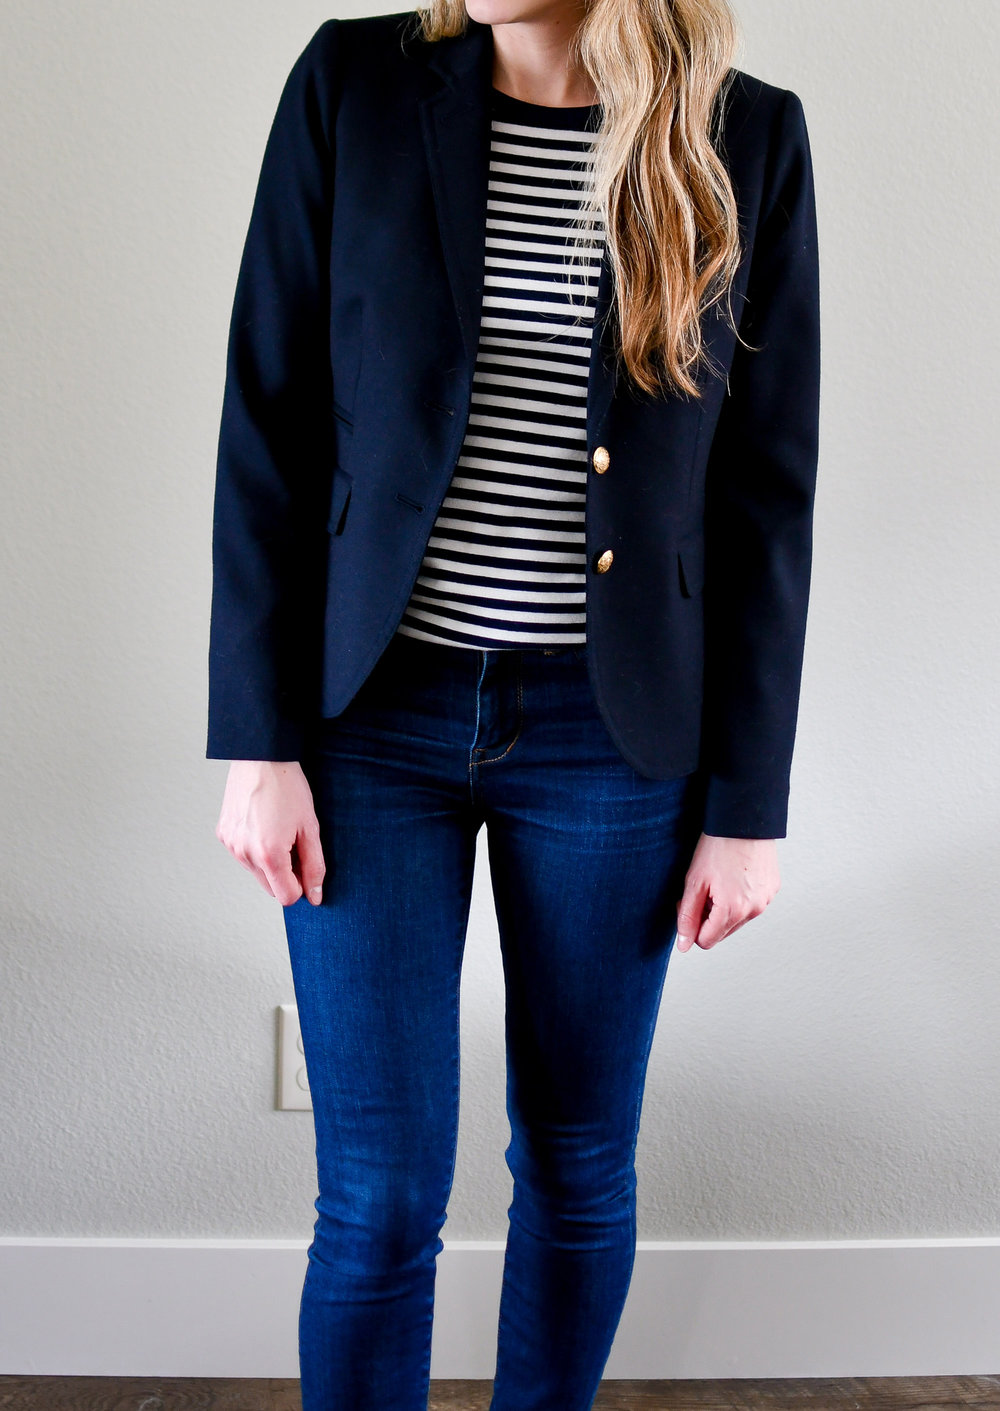 J.Crew Schoolboy blazer work outfit with striped tee — Cotton Cashmere Cat Hair